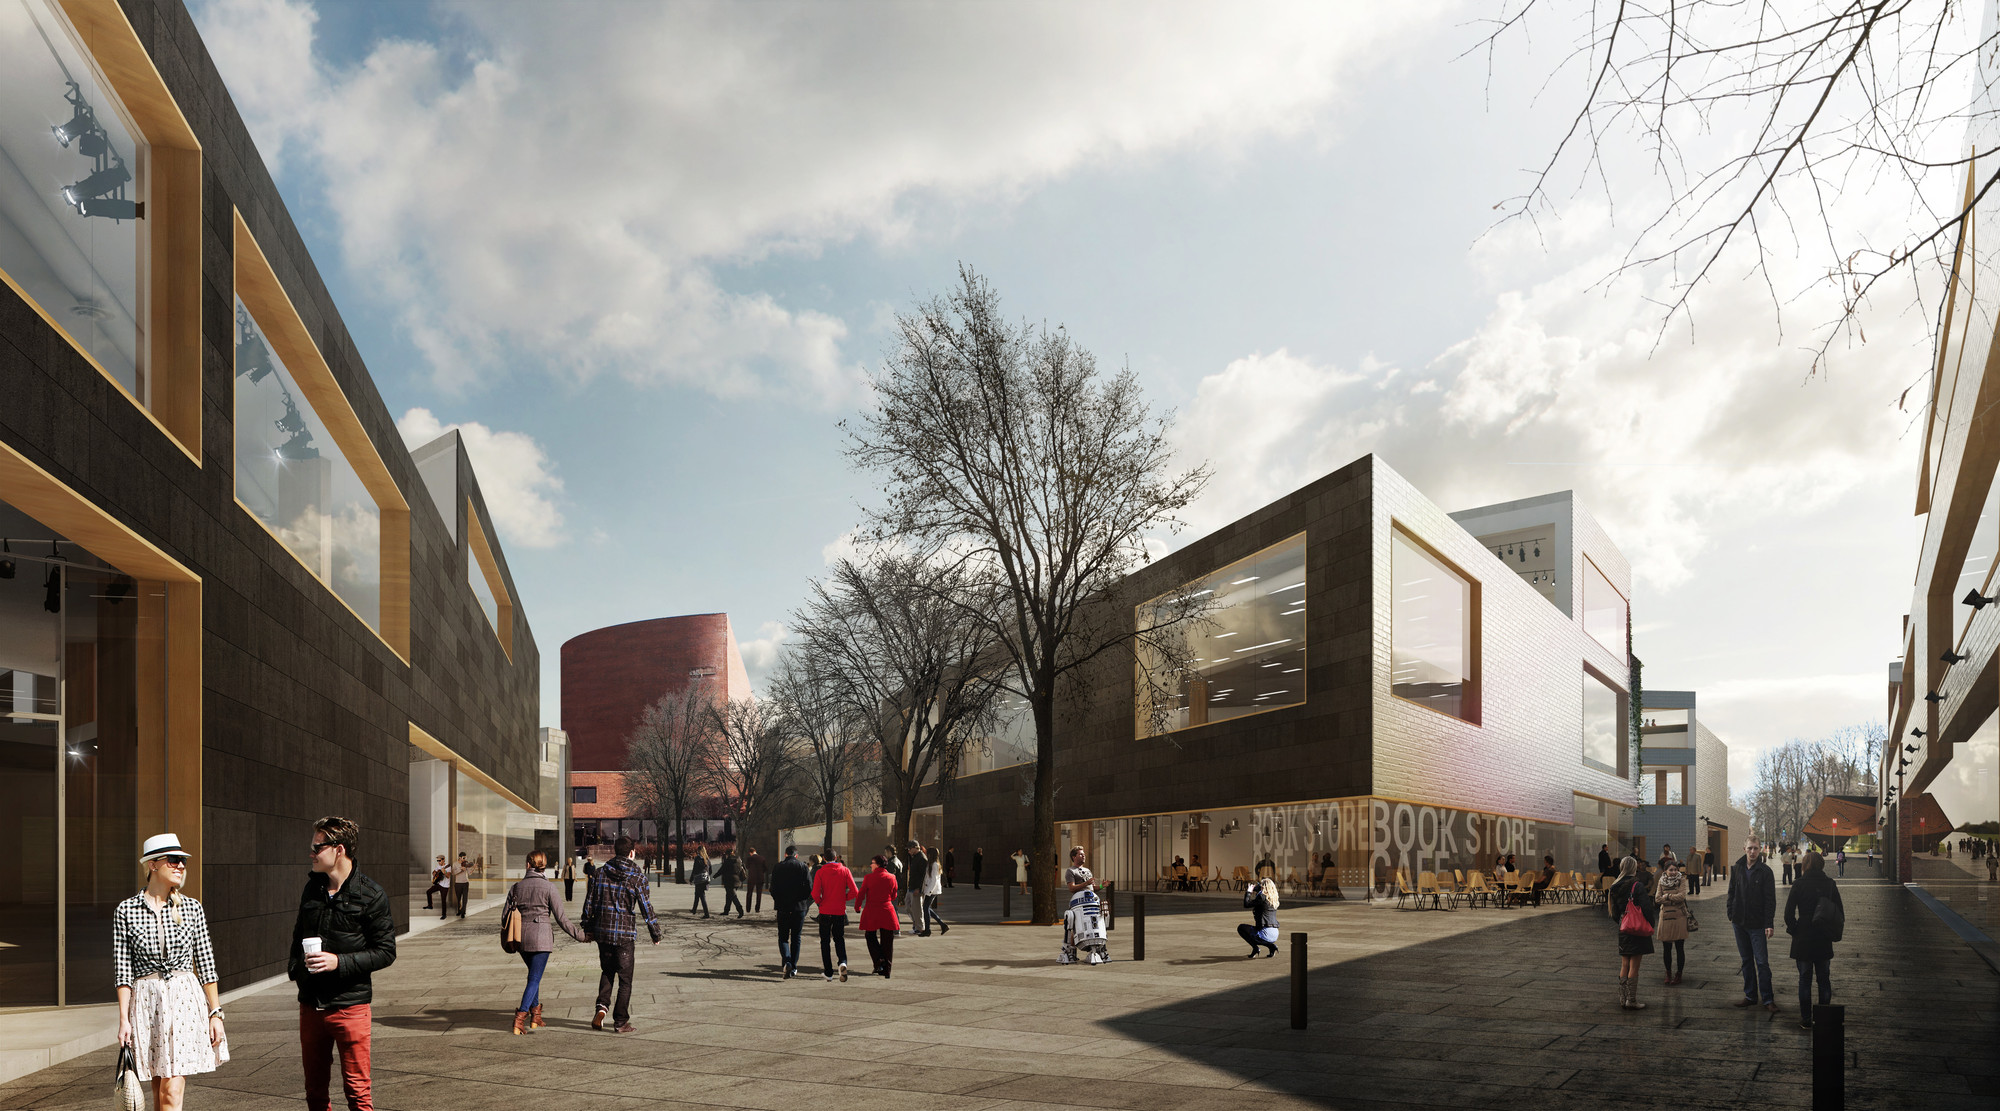 Hipsterkasbah (Otaniemi Campus, Aalto University) / ALA Architects, Boulevard Rendering. Image © ALA Architects